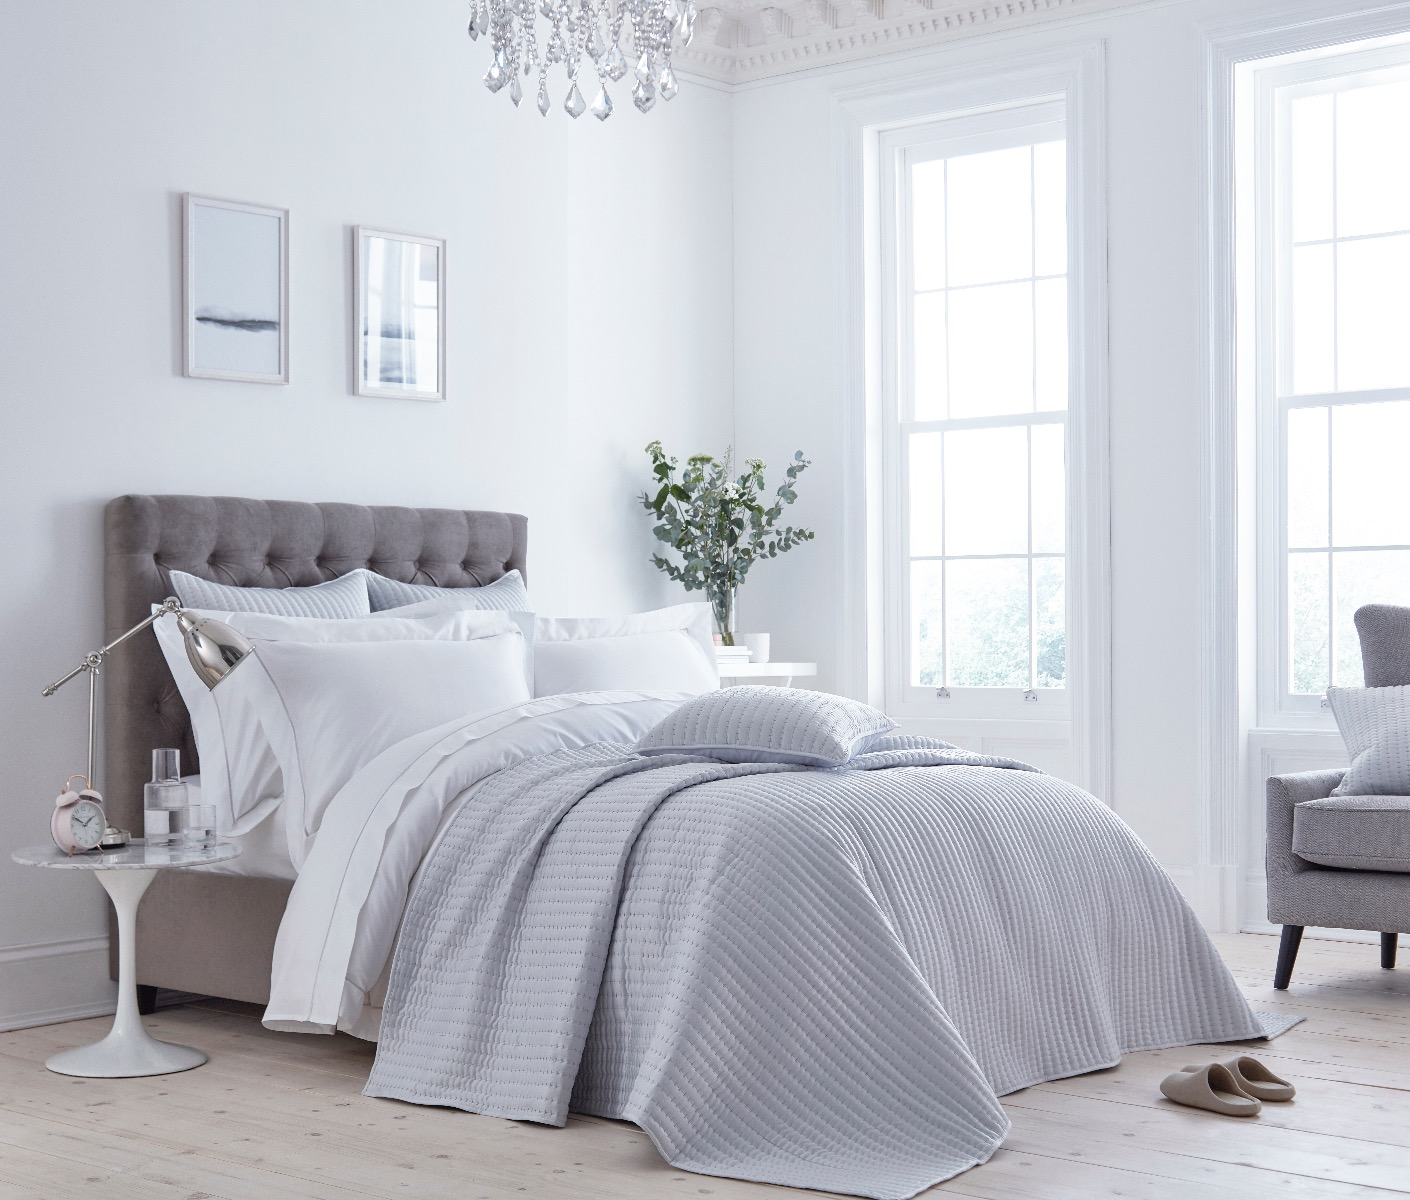 Manhattan Bedspread in Silver